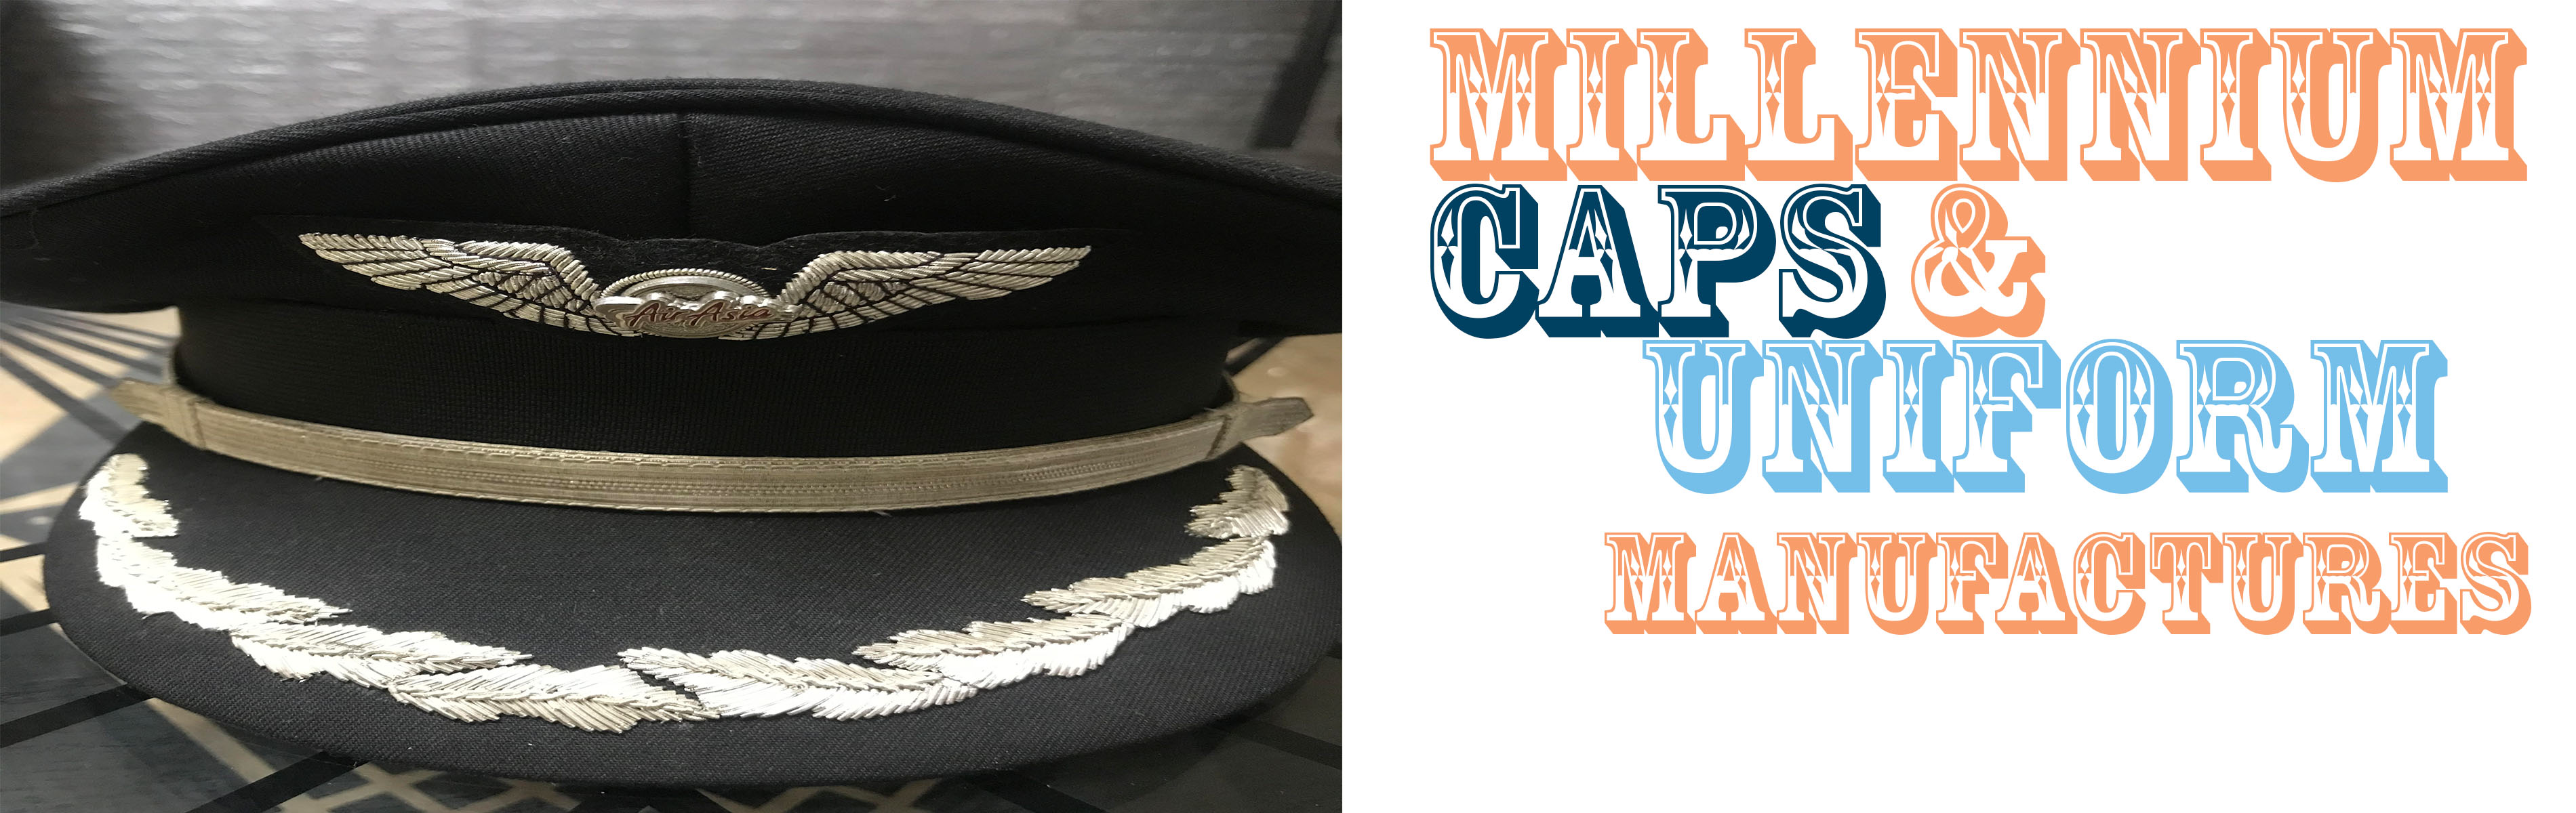 Millennium Caps Security Uniform & Embroideries